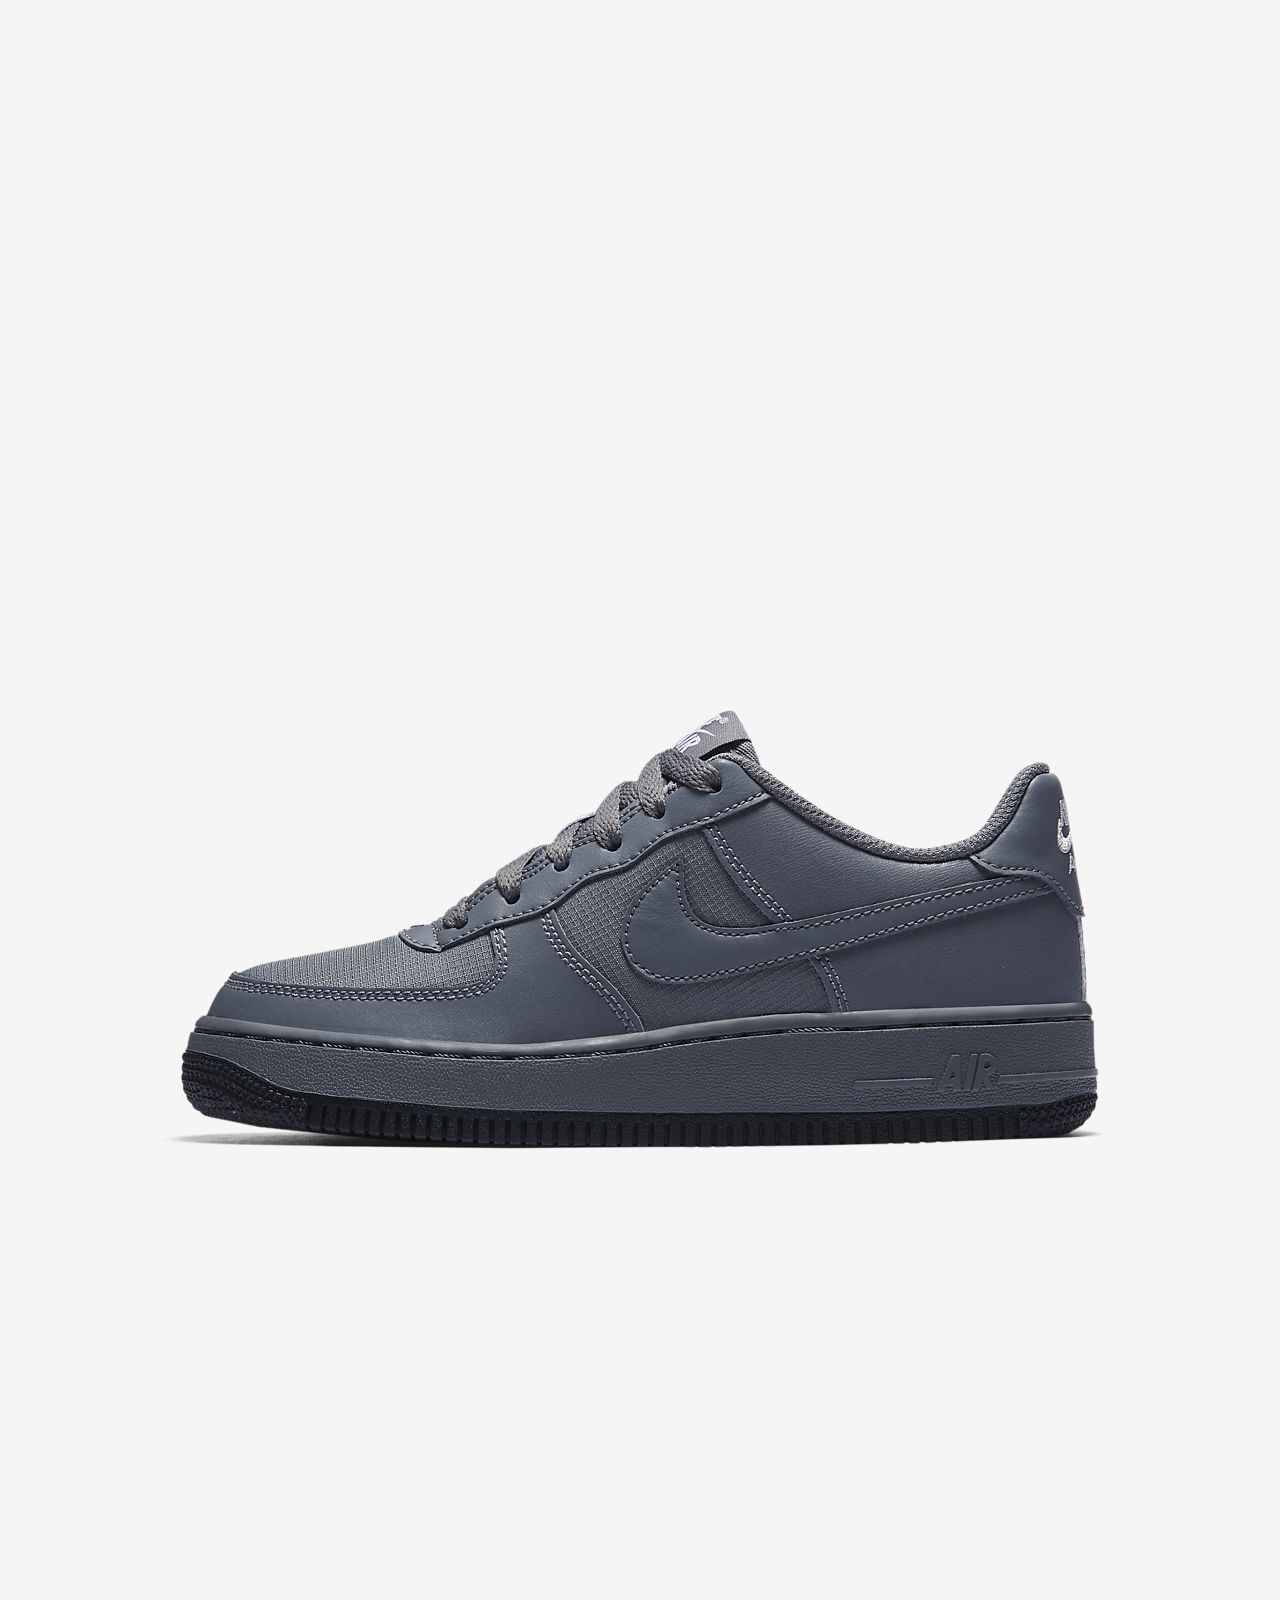 nike air force 1 low 4.5 nz